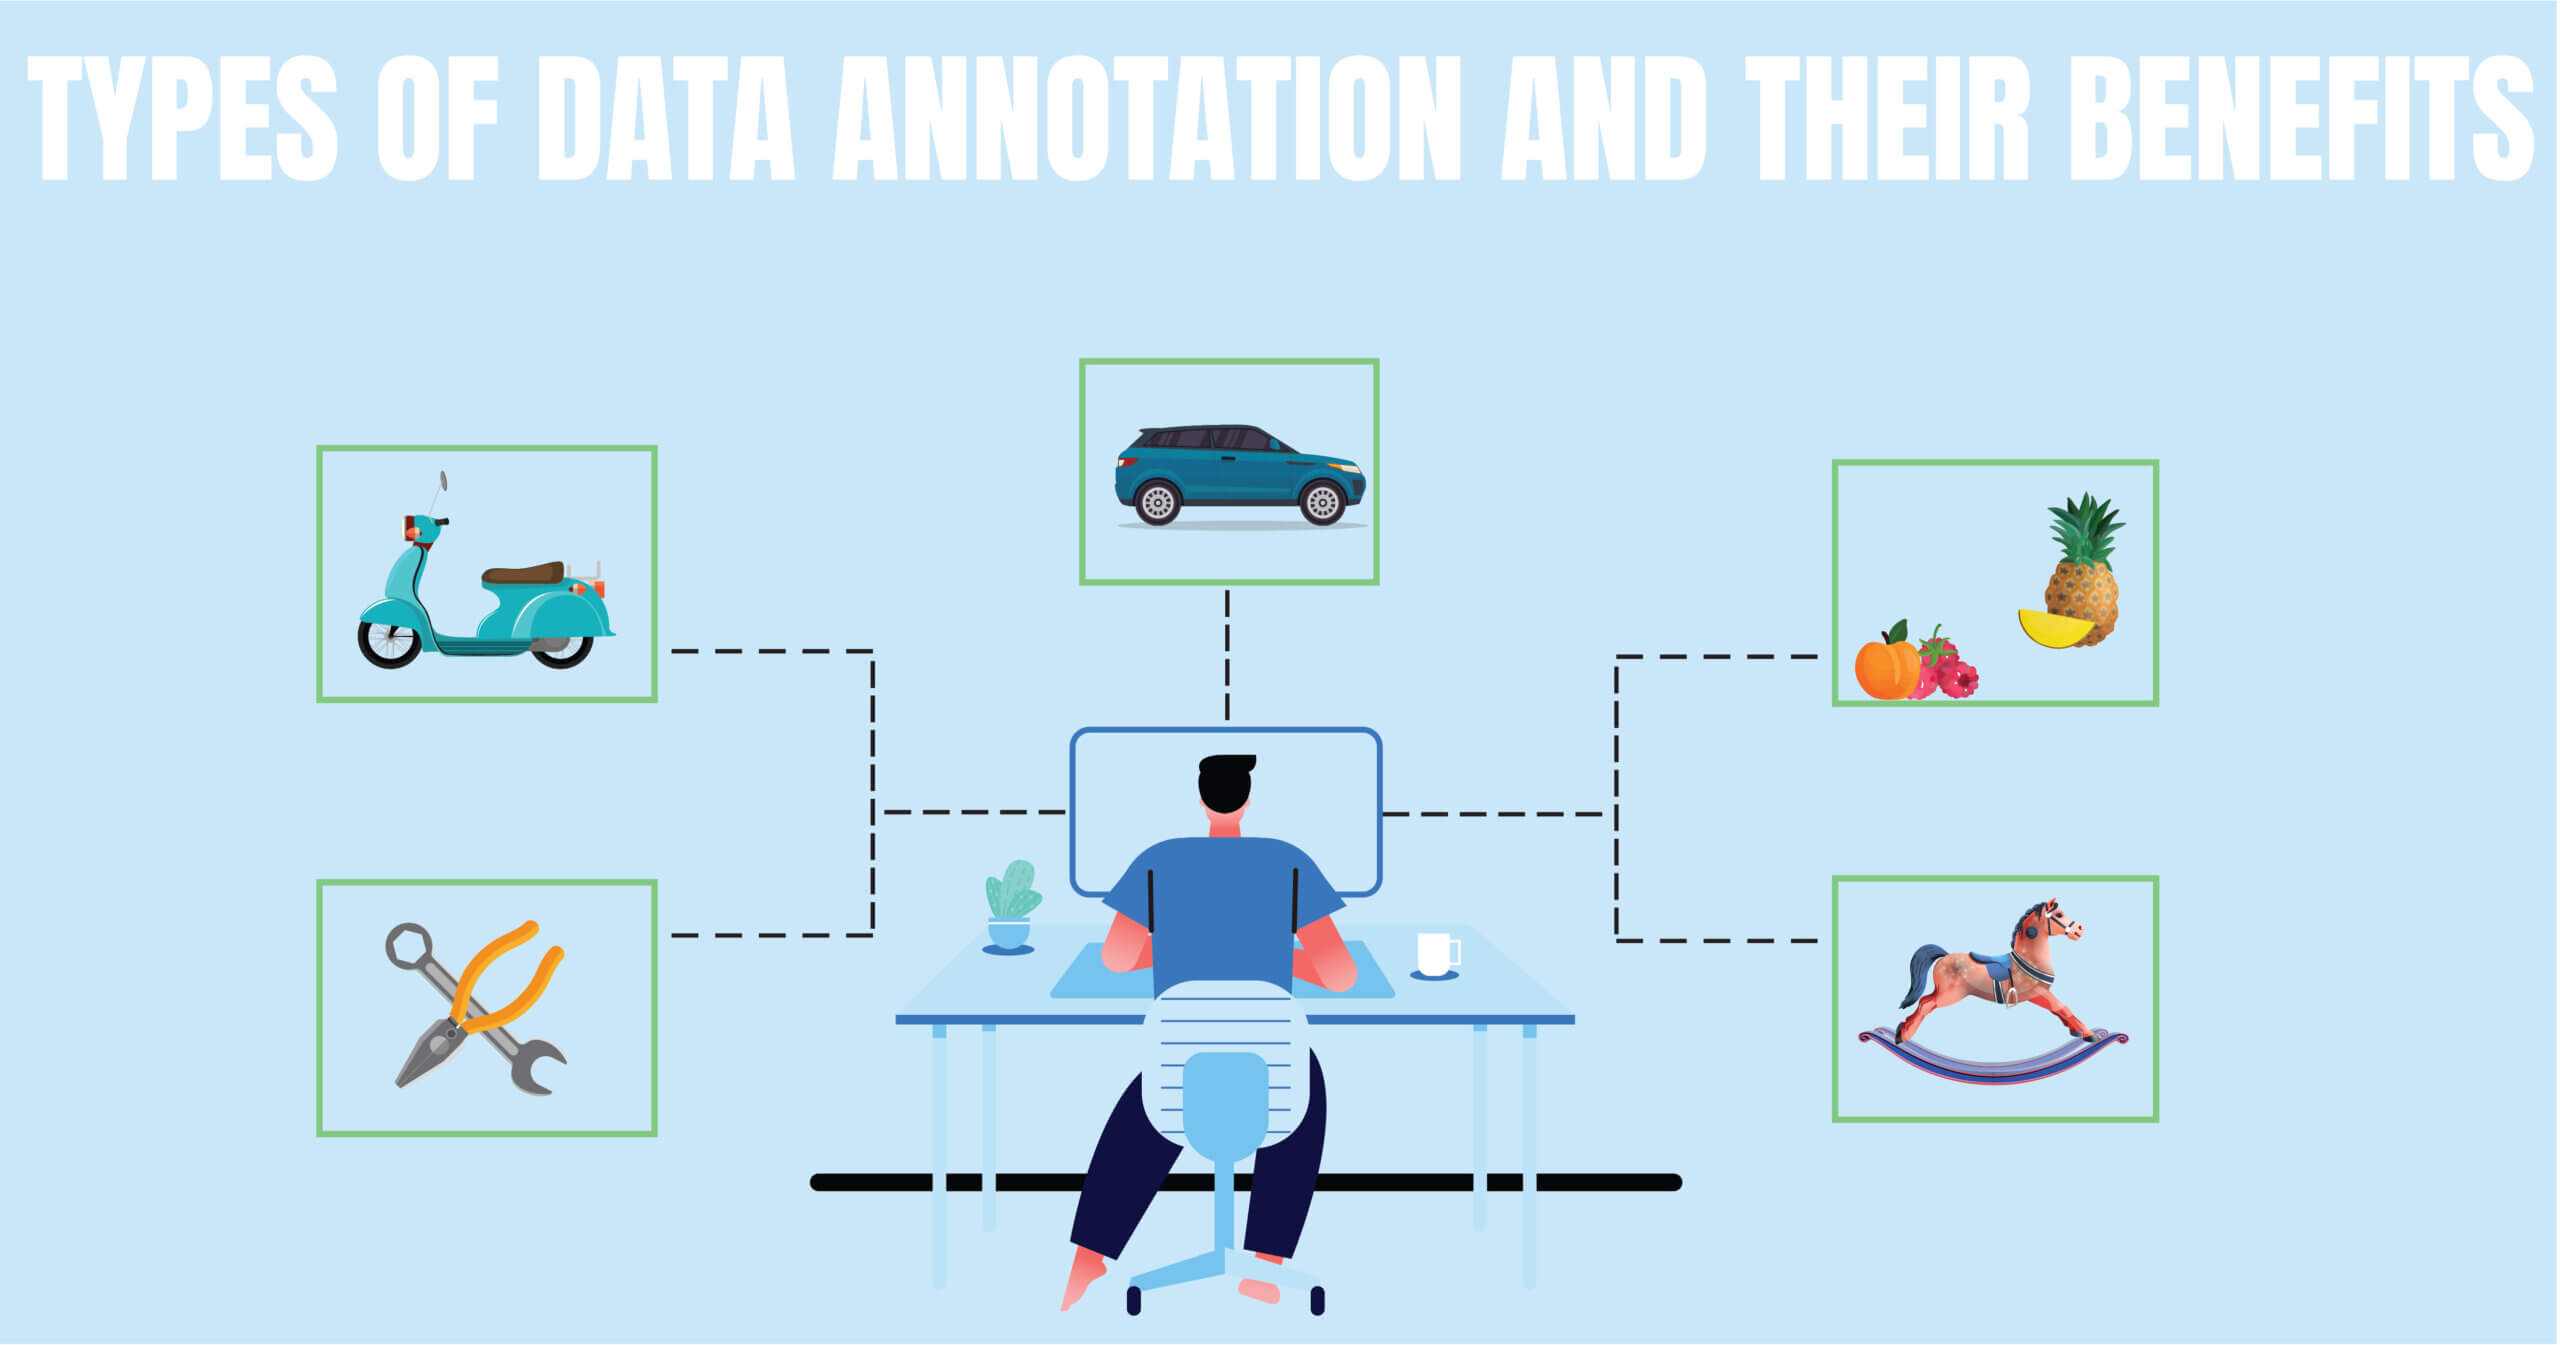 Types of data annotation and their benefits